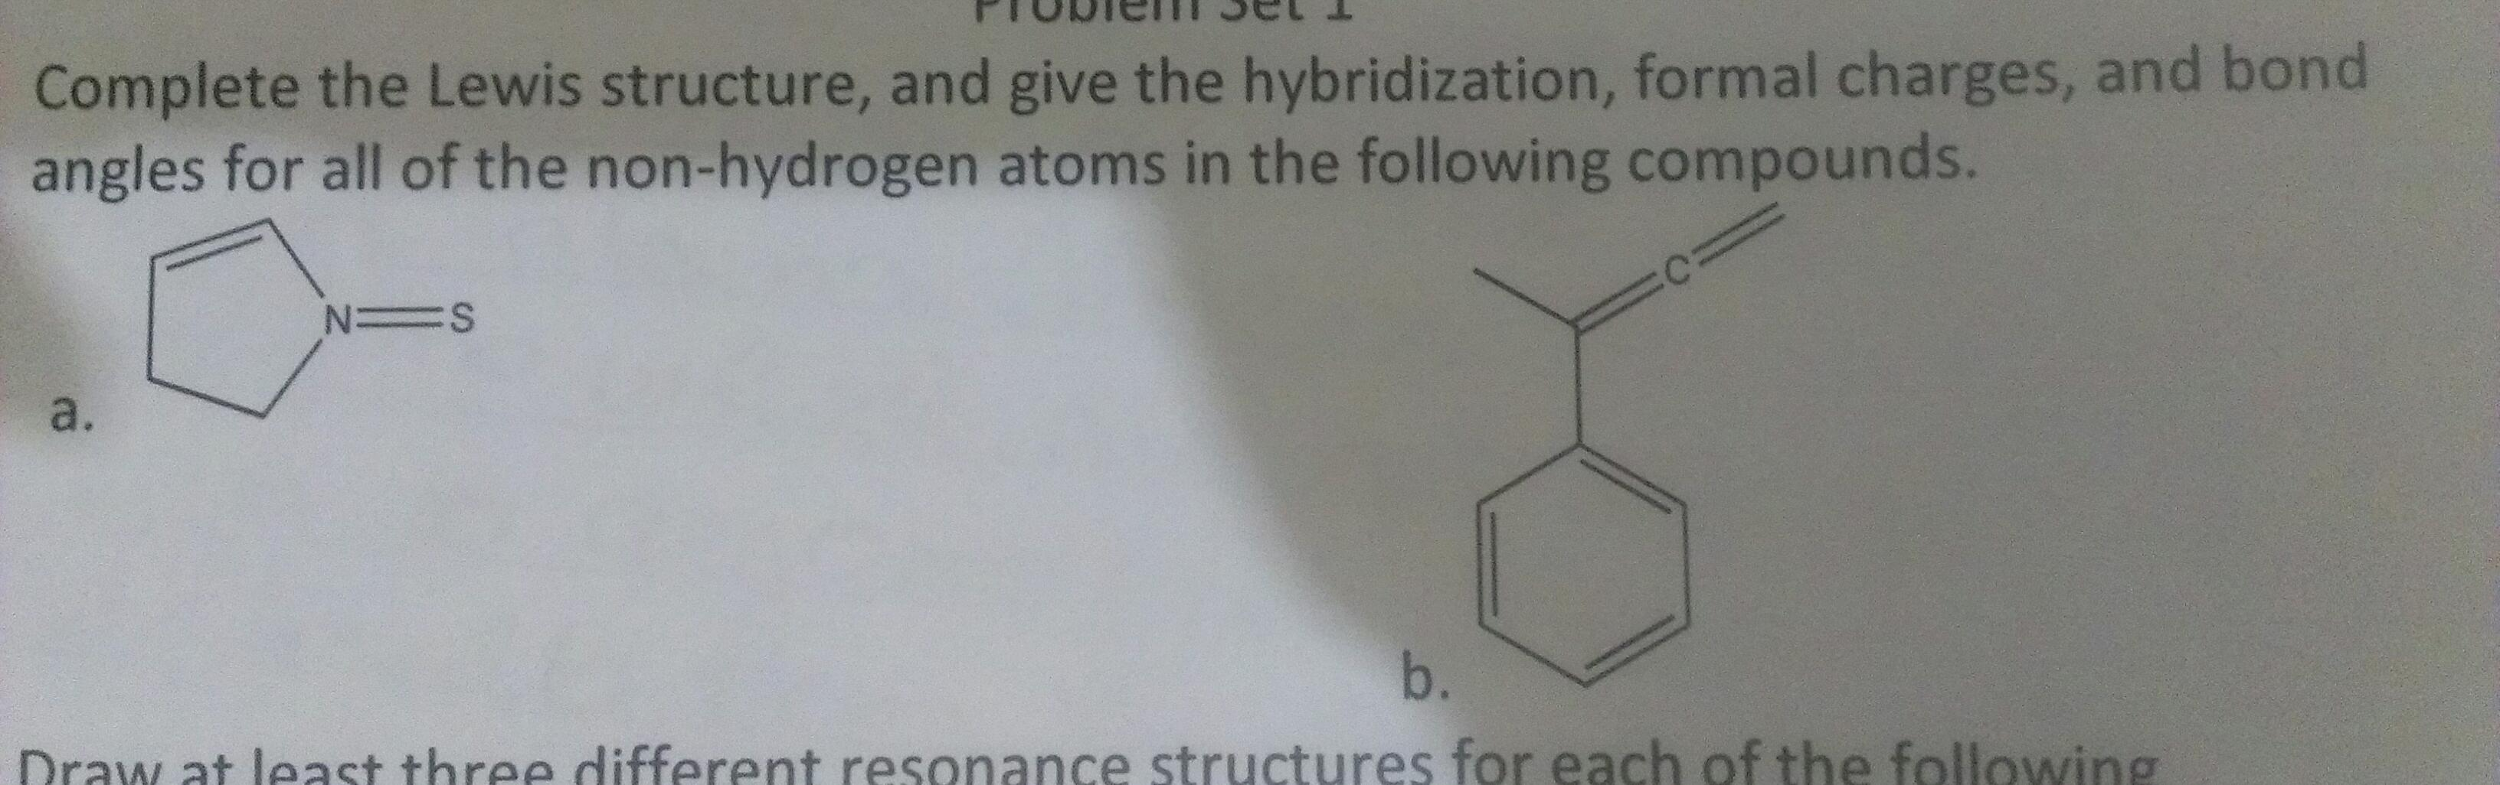 Complete the Lewis structure, and give the hybridi